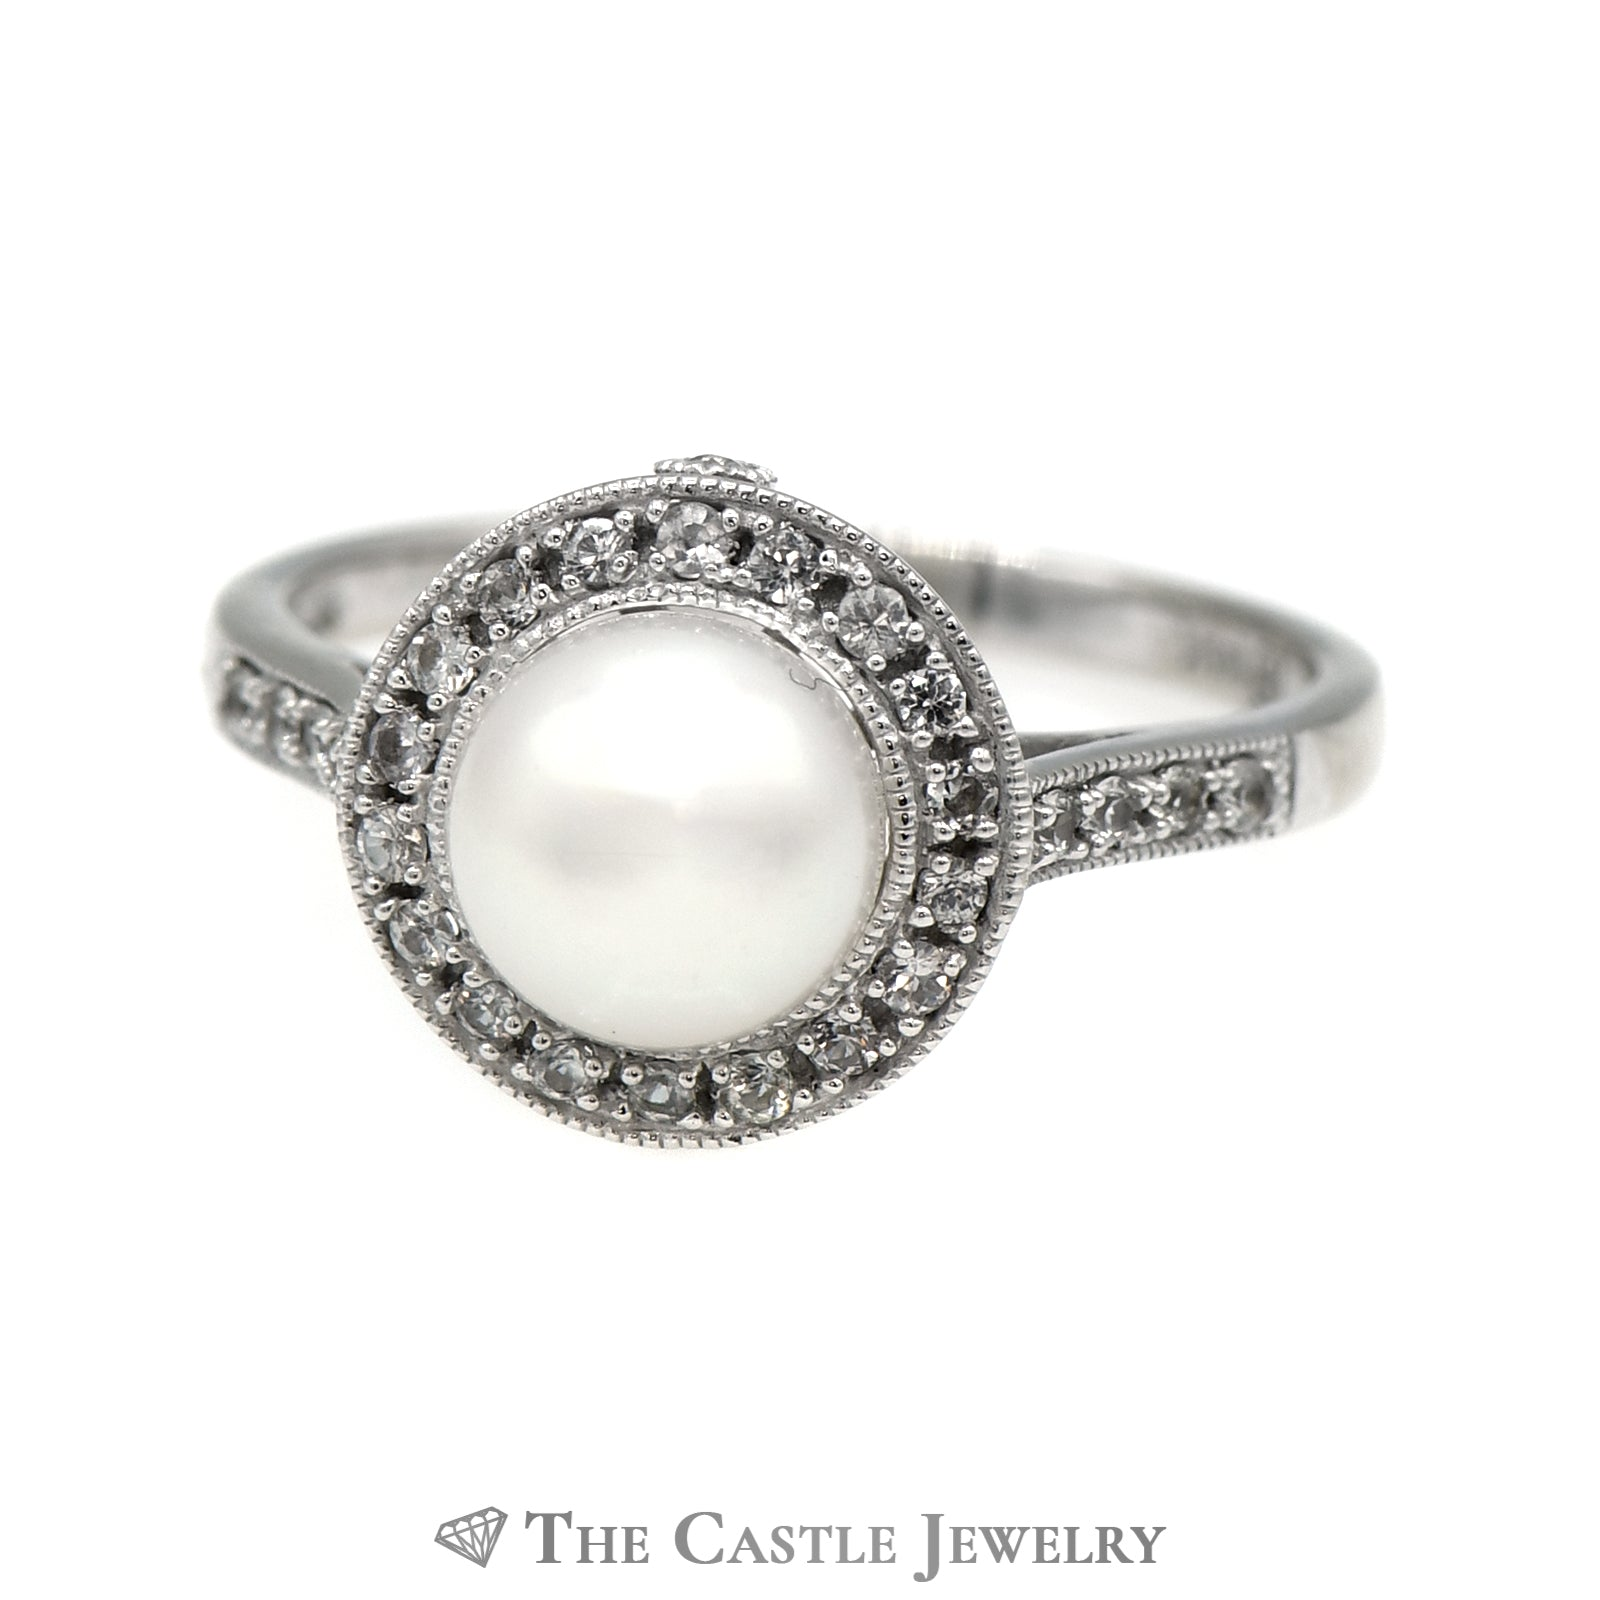 8mm Pearl Ring with White Topaz Halo & Accents in 14k White Gold